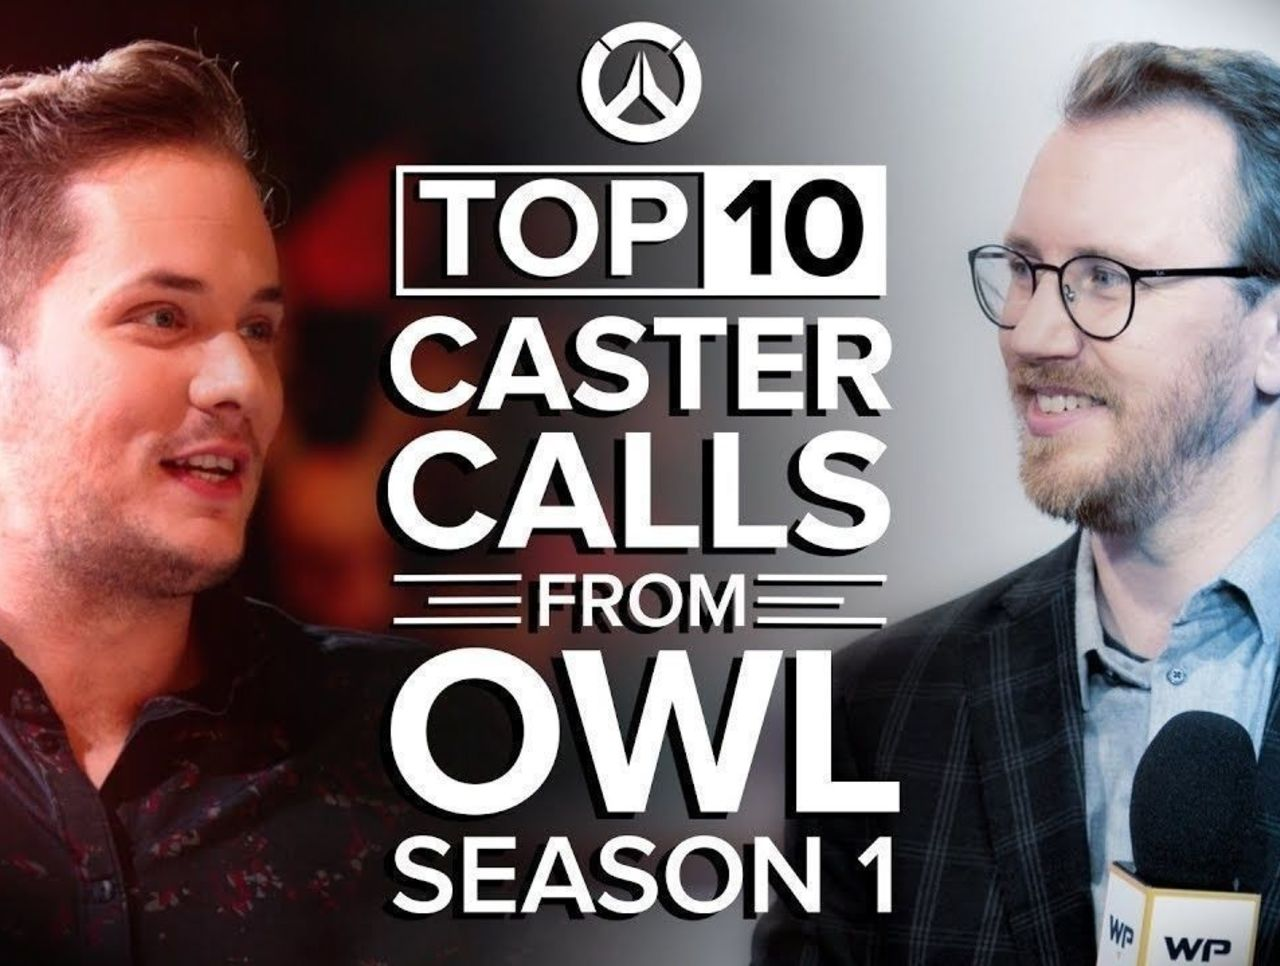 Top 10 Caster Calls from OWL Season 1